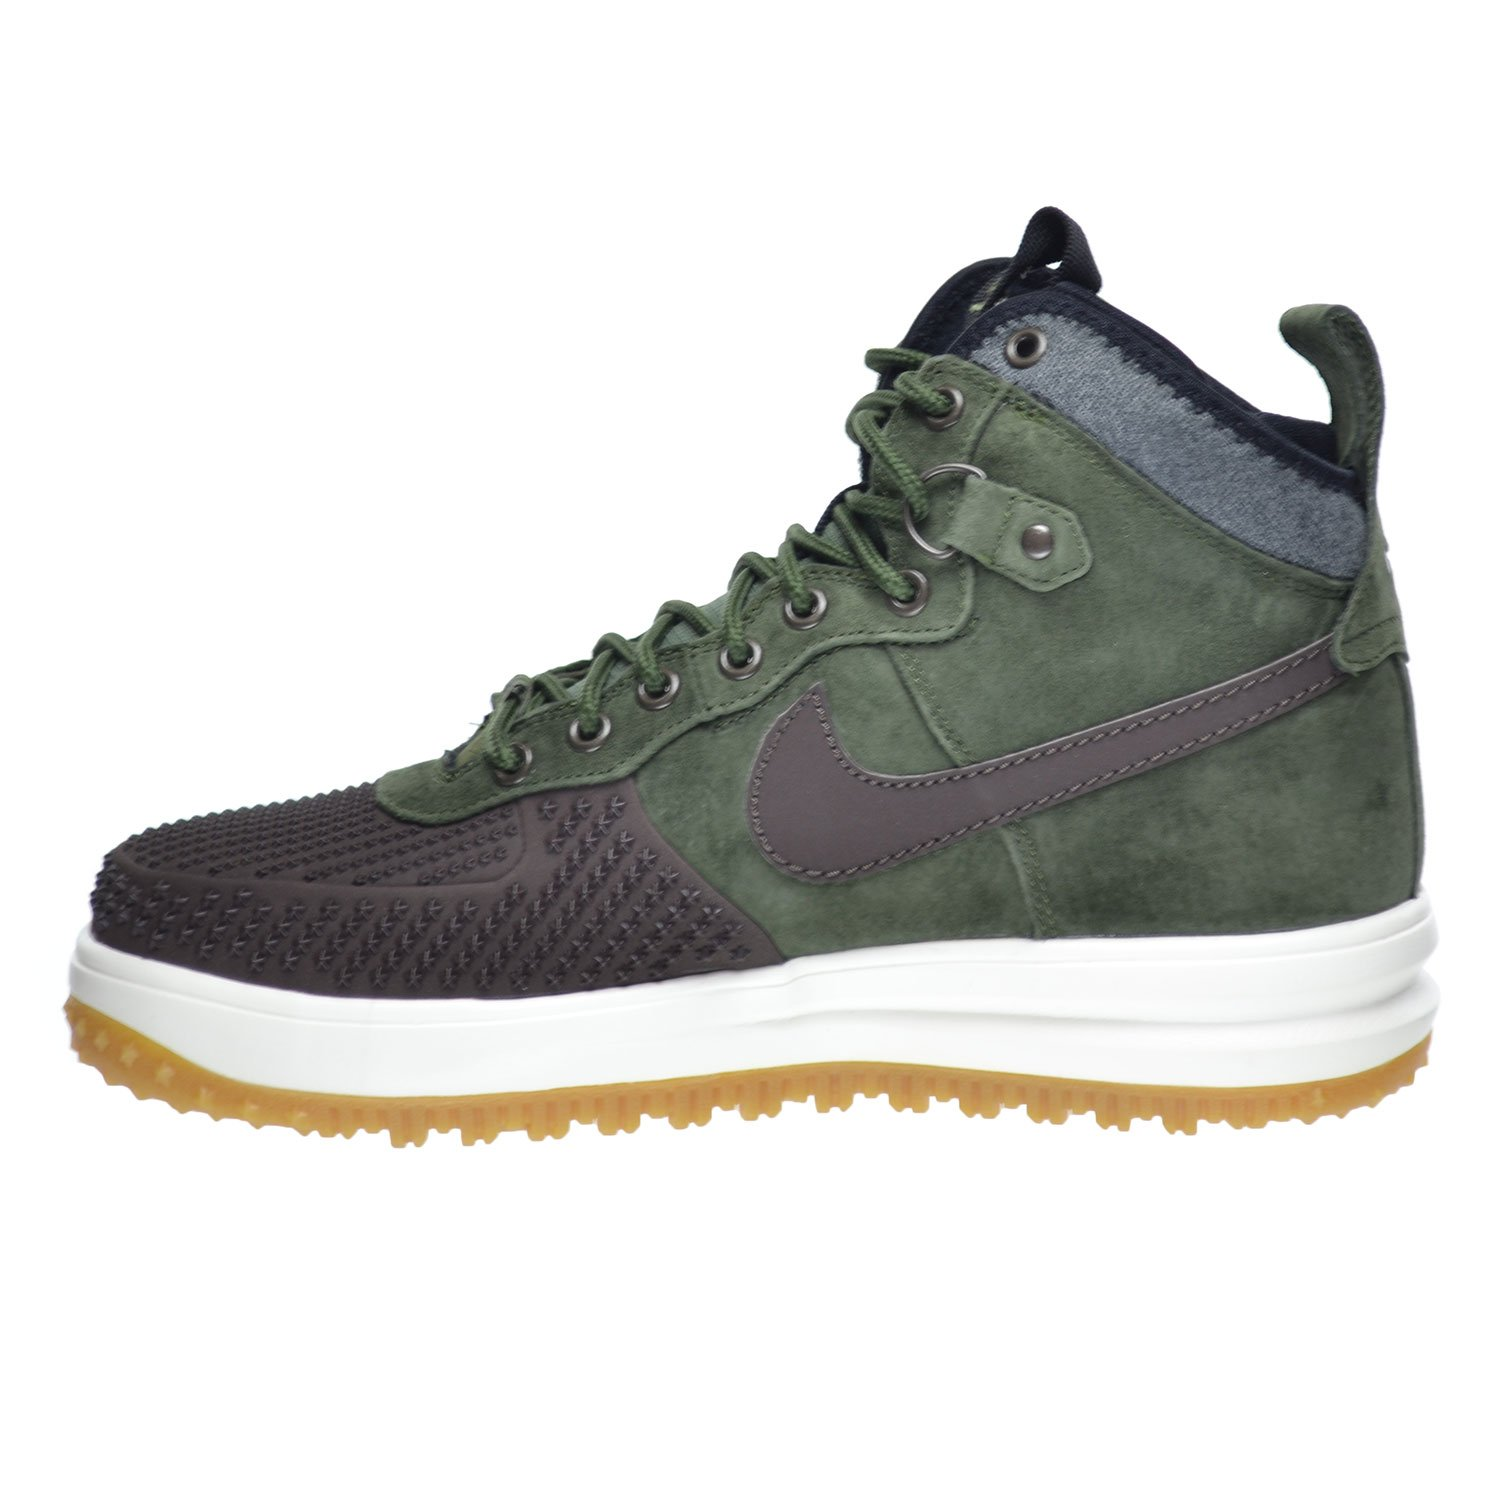 Amazon.com | Nike Lunar Force 1 Duckboot Men's Shoes Baroque Brown/Army  Olive-Black-Sliver 805899-200 | Boots